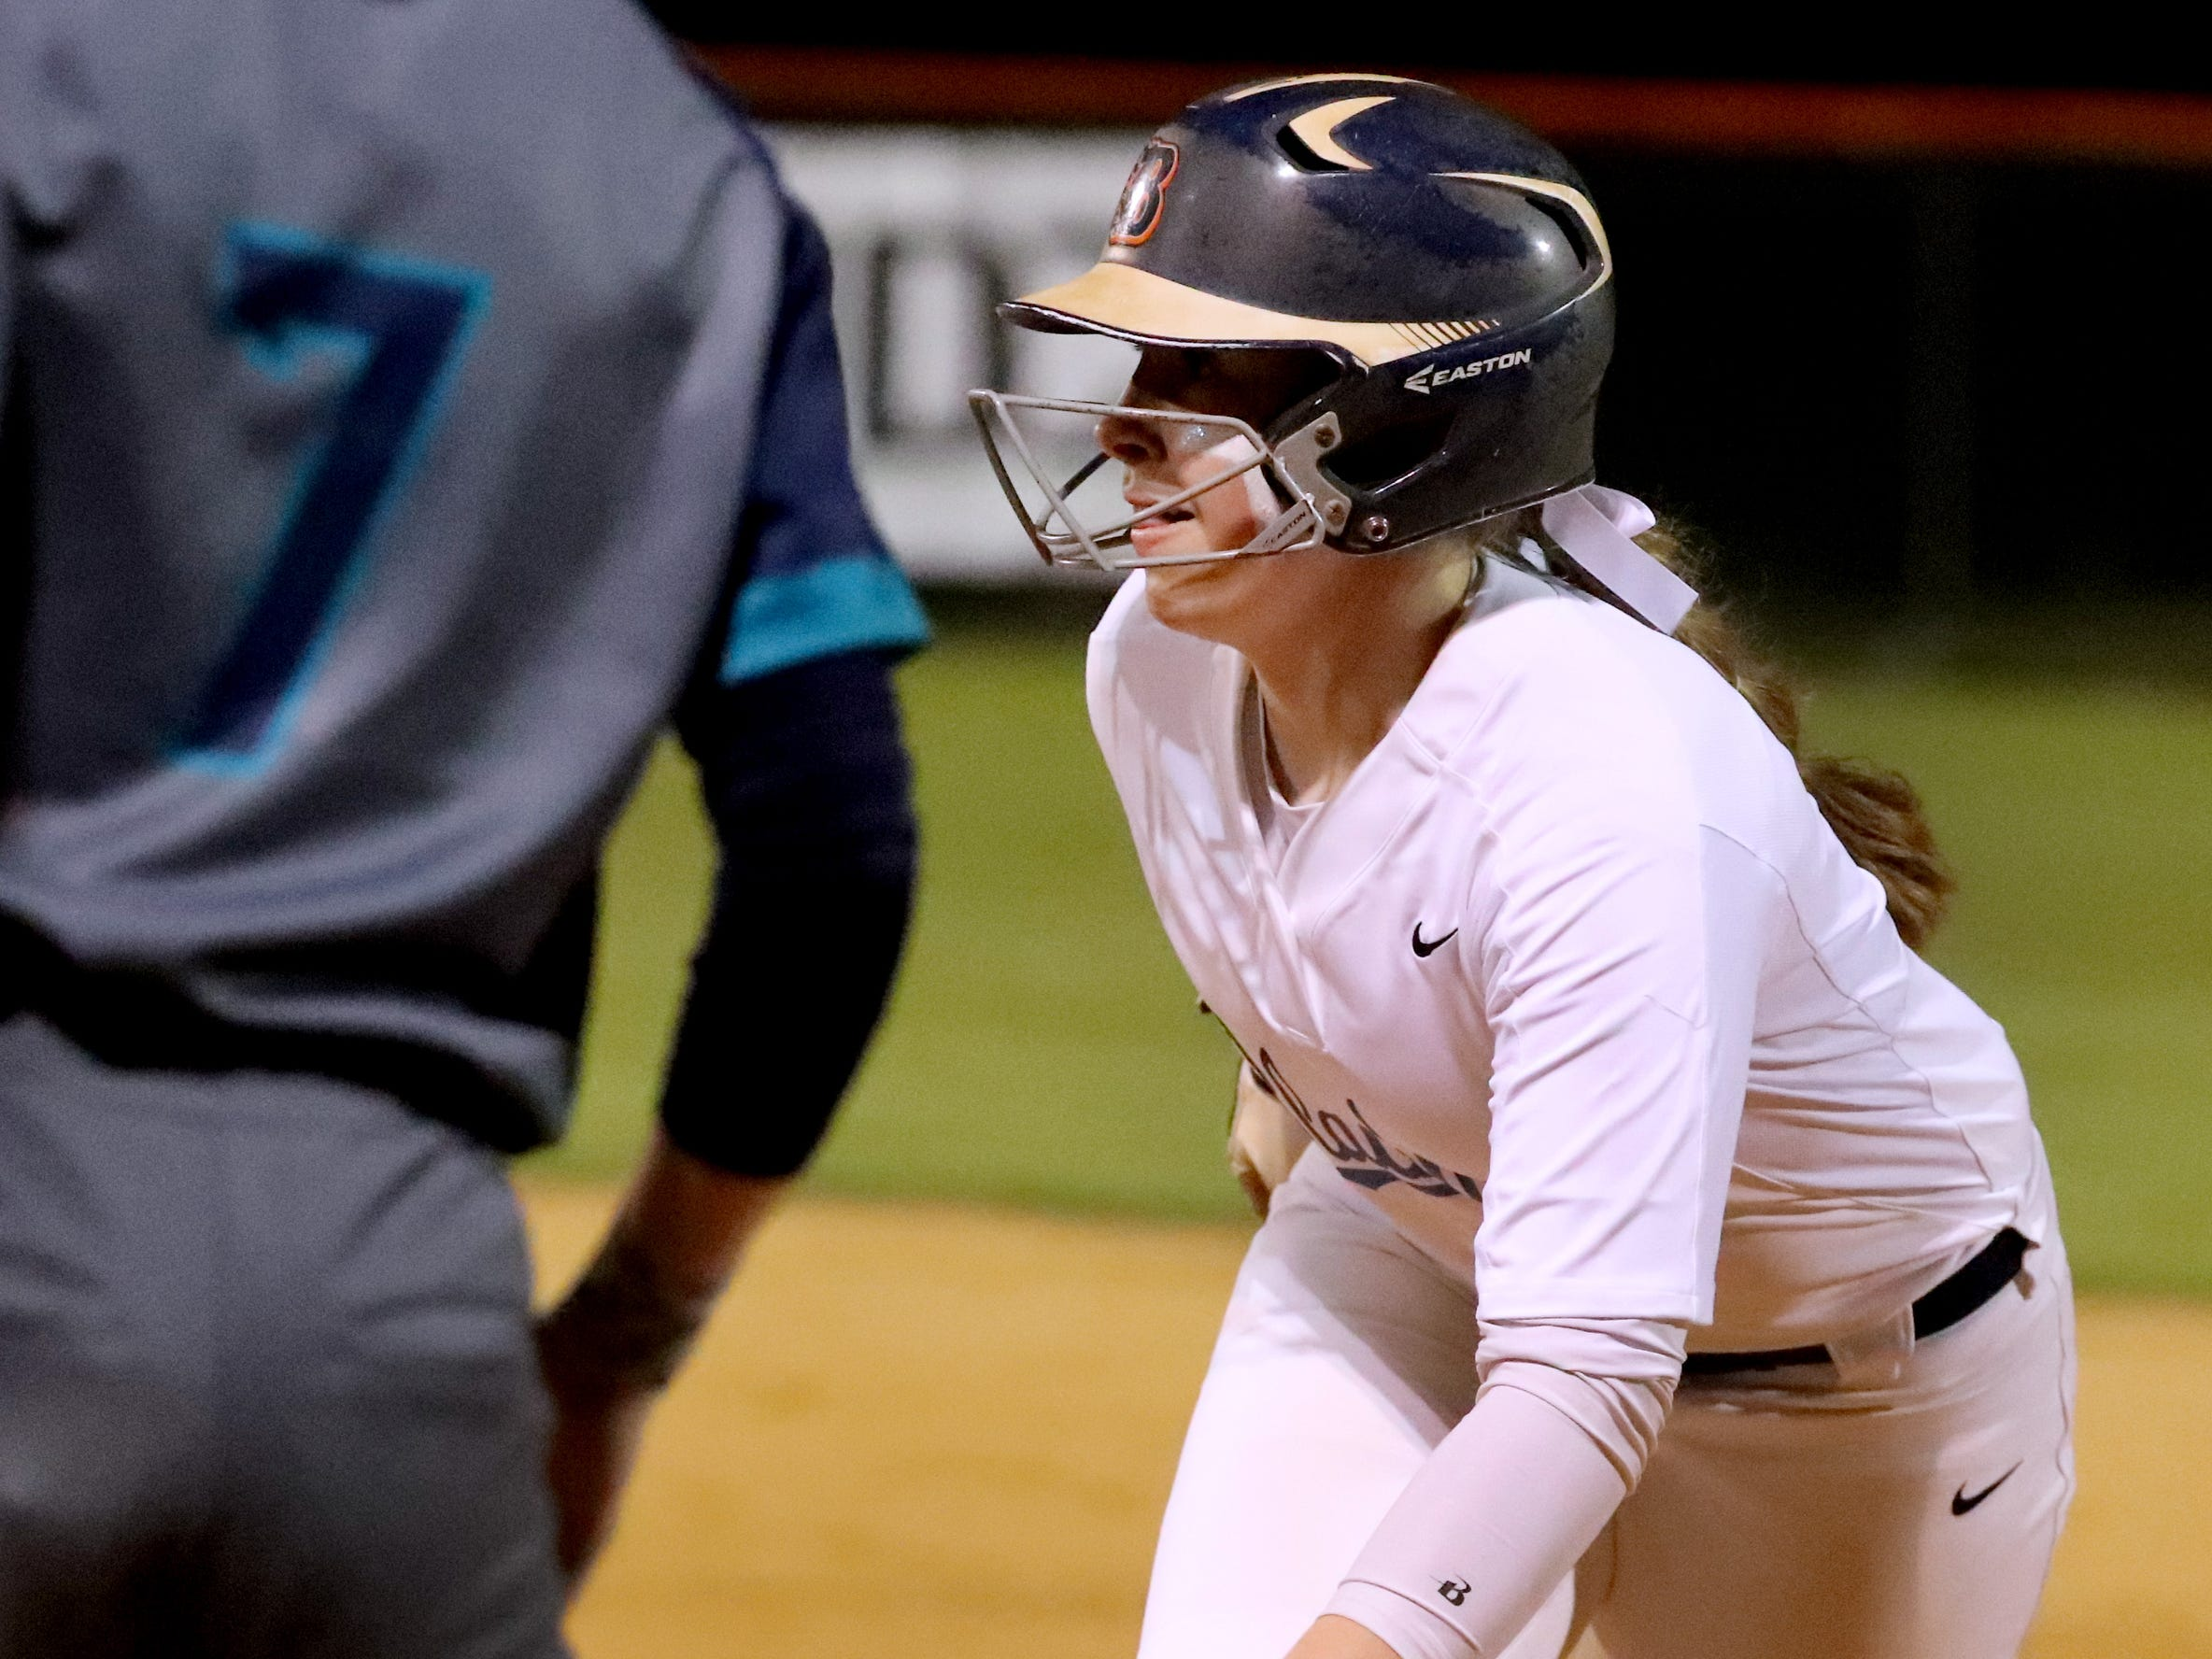 Blackman's Elaina McGill (16) takes a lead off first base during the game against Siegel, on Monday, March 18, 2019, at Blackman.